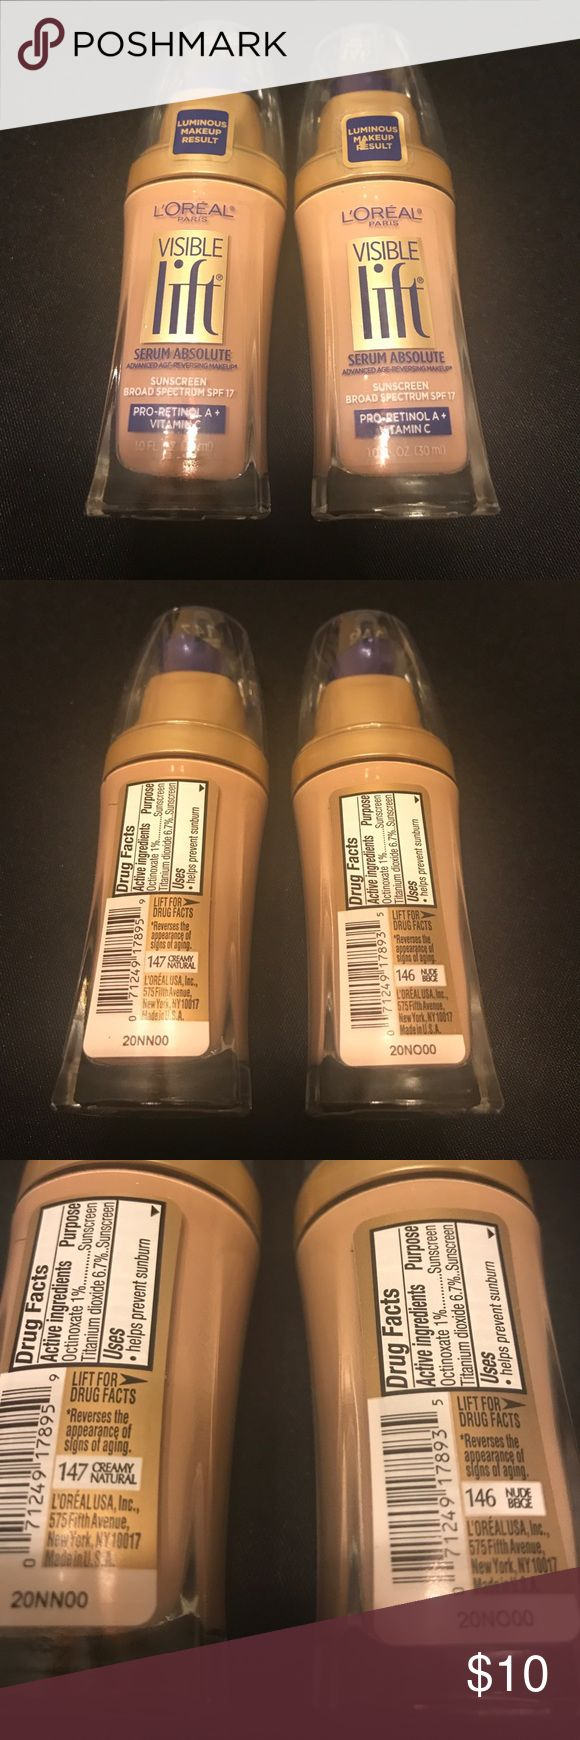 2 L'Oréal visible lift foundations. New 147 & 146 L'Oréal visible lift foundations. New 147 creamy natural and 146 nude beige. Price is for both and lowest price listed. L'Oreal Makeup Foundation